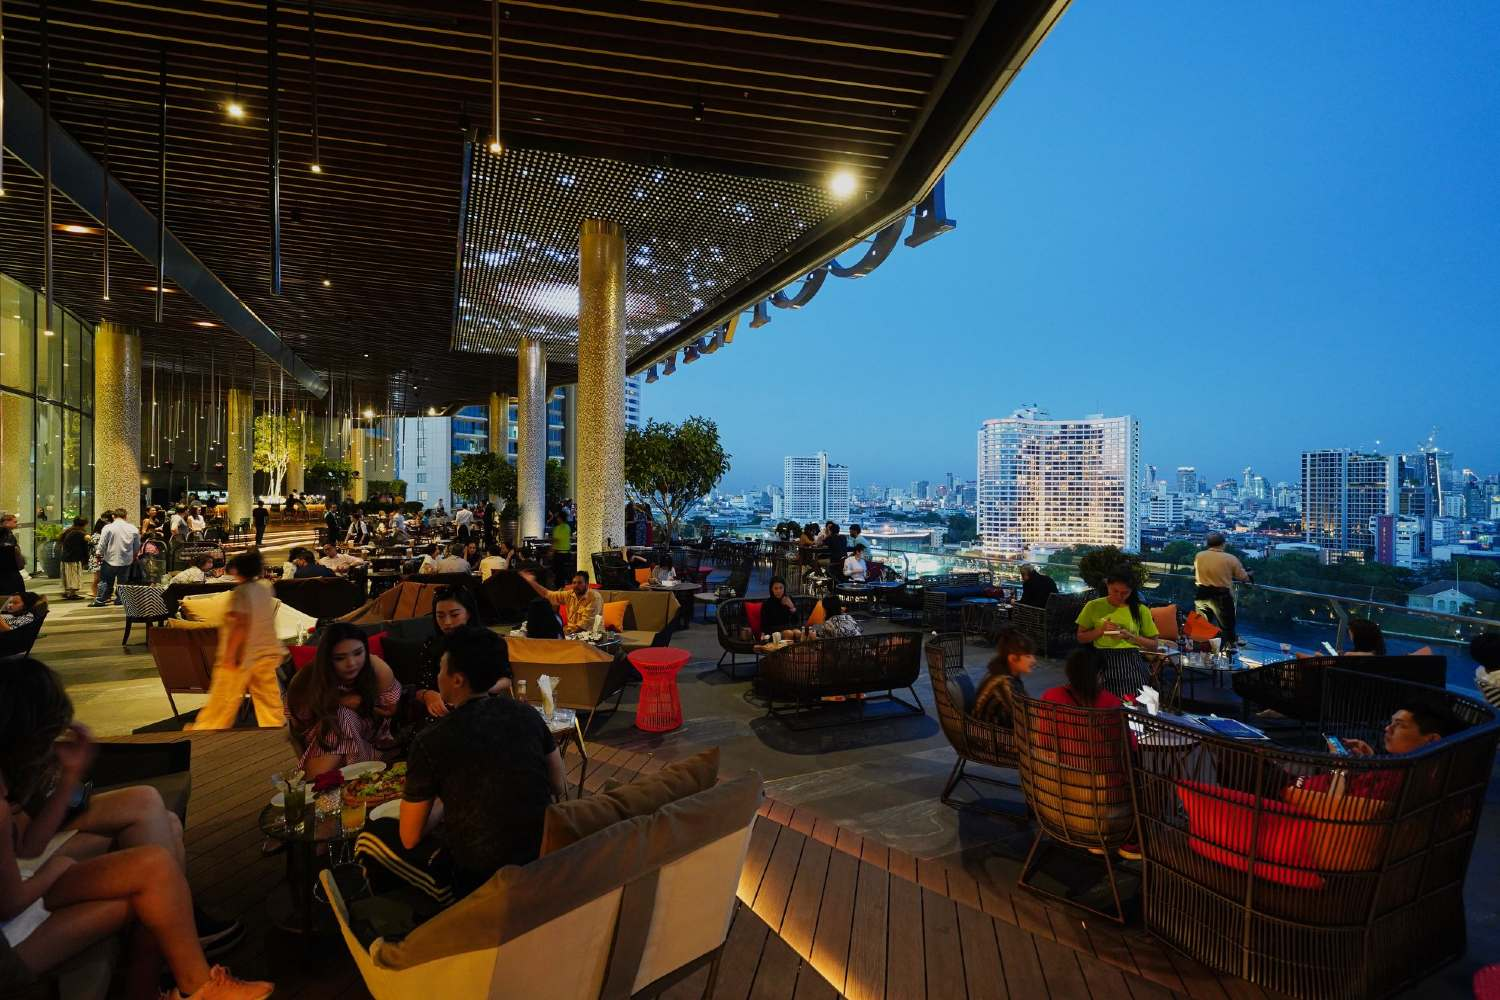 The Tasana Nakorn terrace on the sixth floor of ICONSIAM in Bangkok